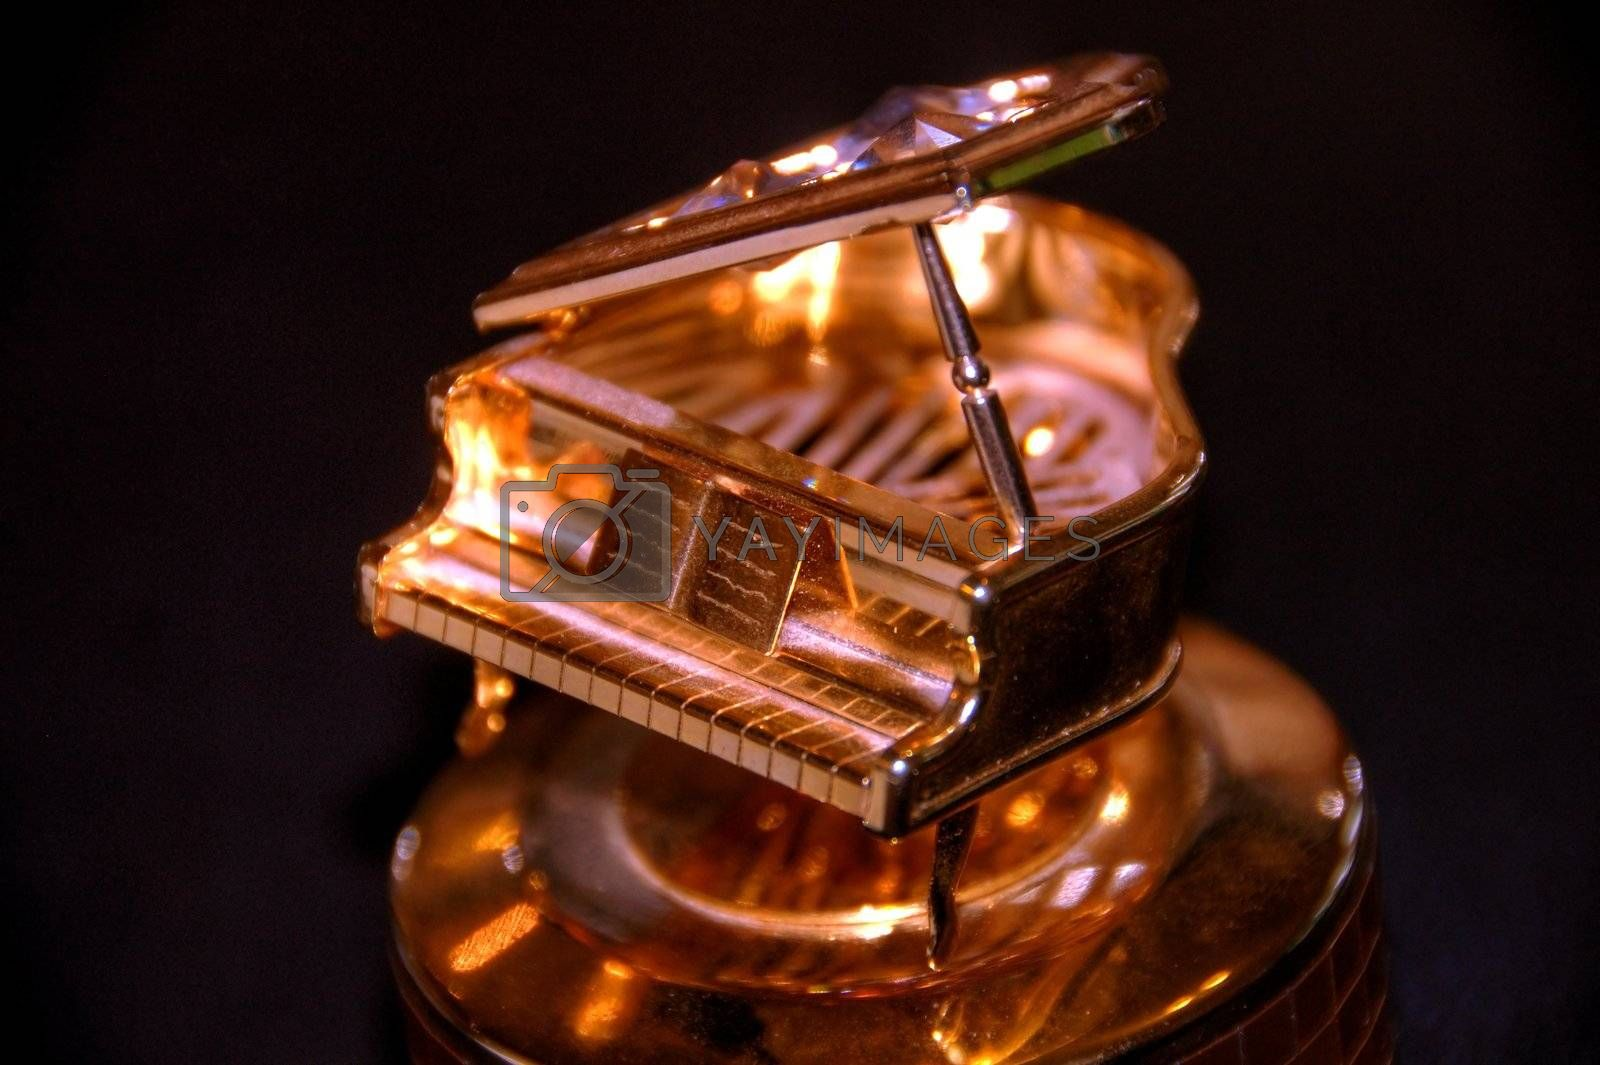 minature piano toy